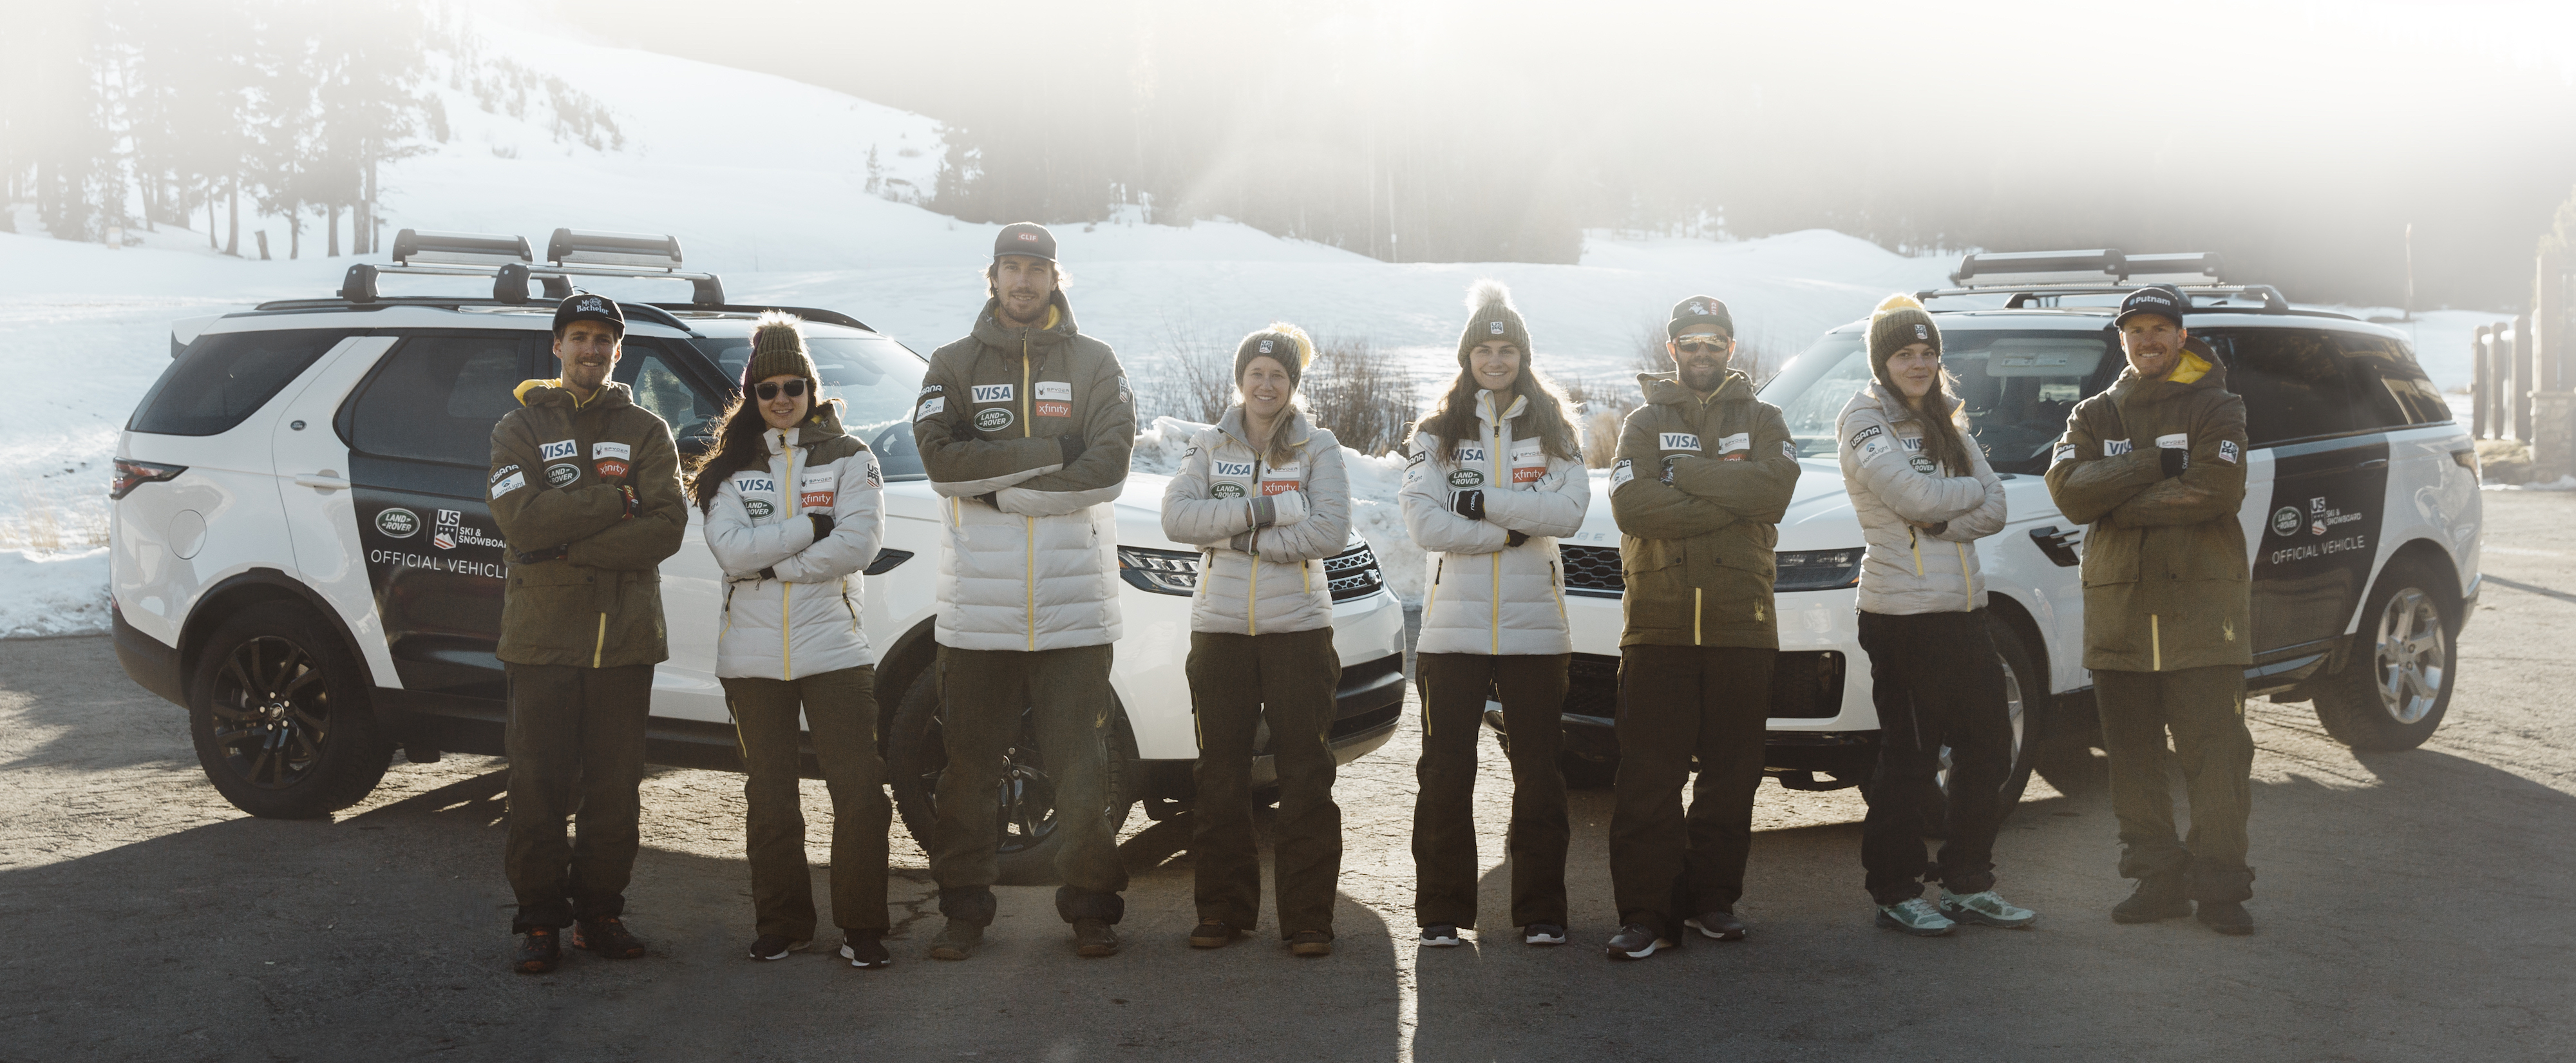 2020-21 Land Rover U.S. Alpine Ski Team Nominations